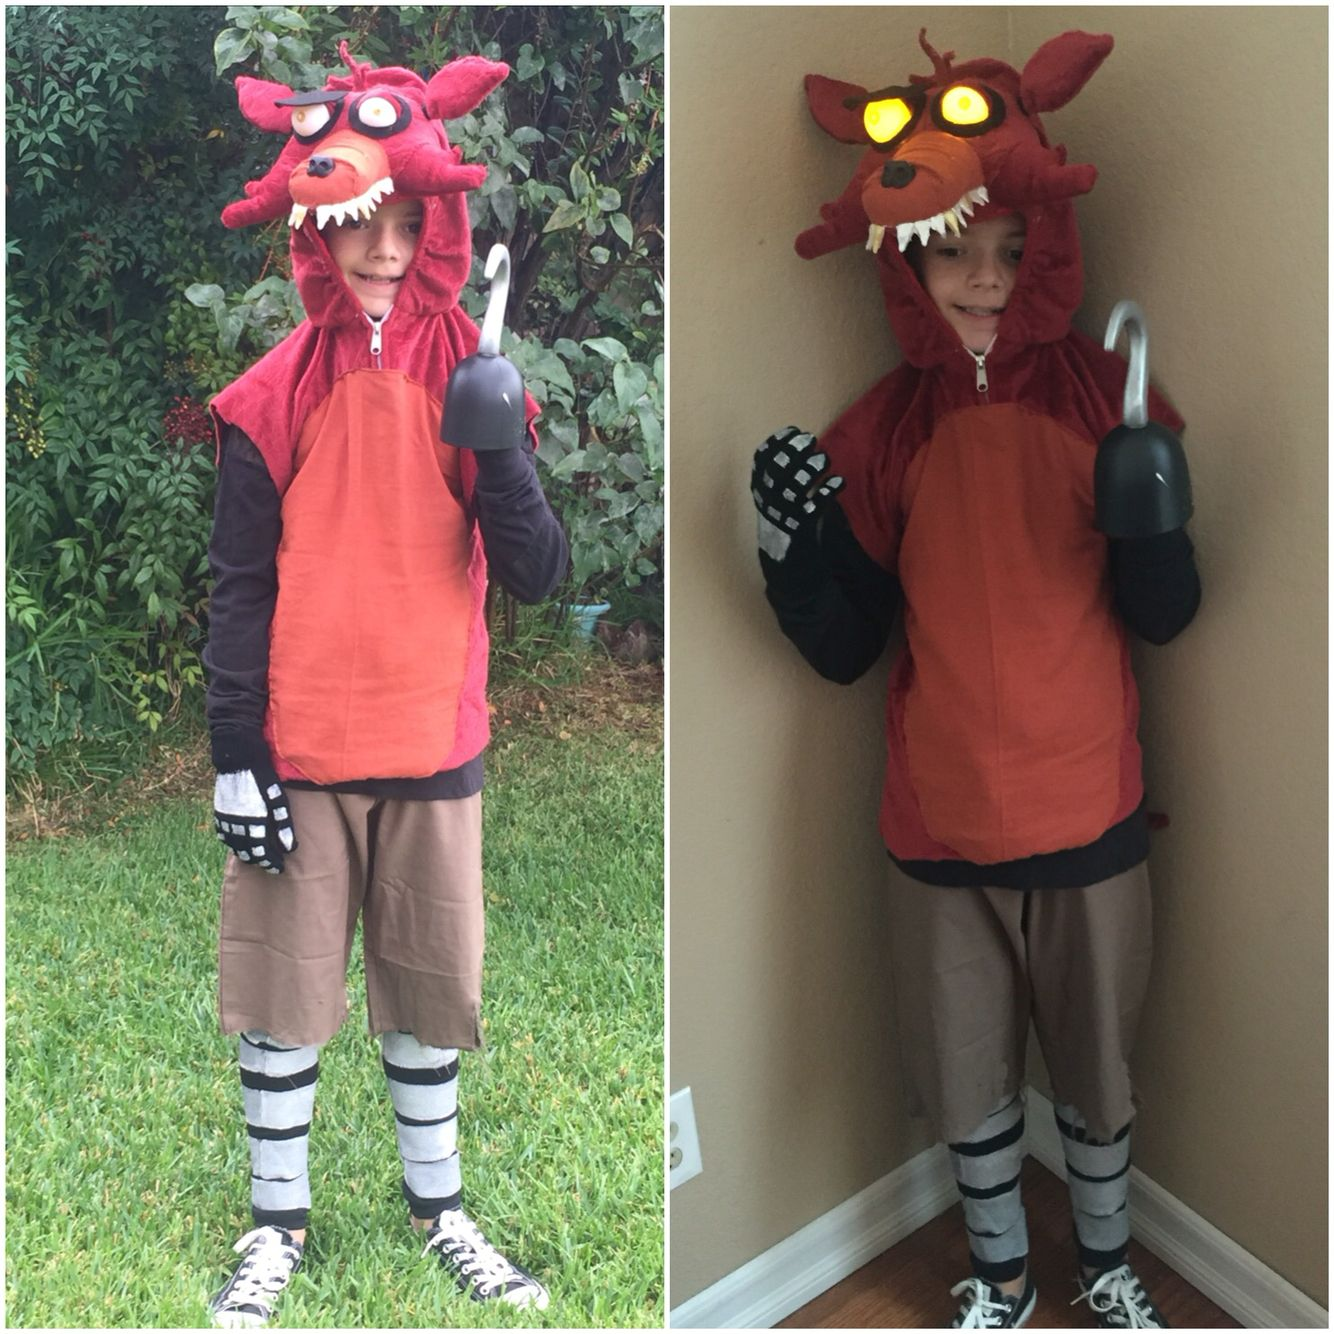 Dress up five nights at freedys - Diy Home Made Foxy Fnaf Five Nights At Freddys Costume Light Up Eyes